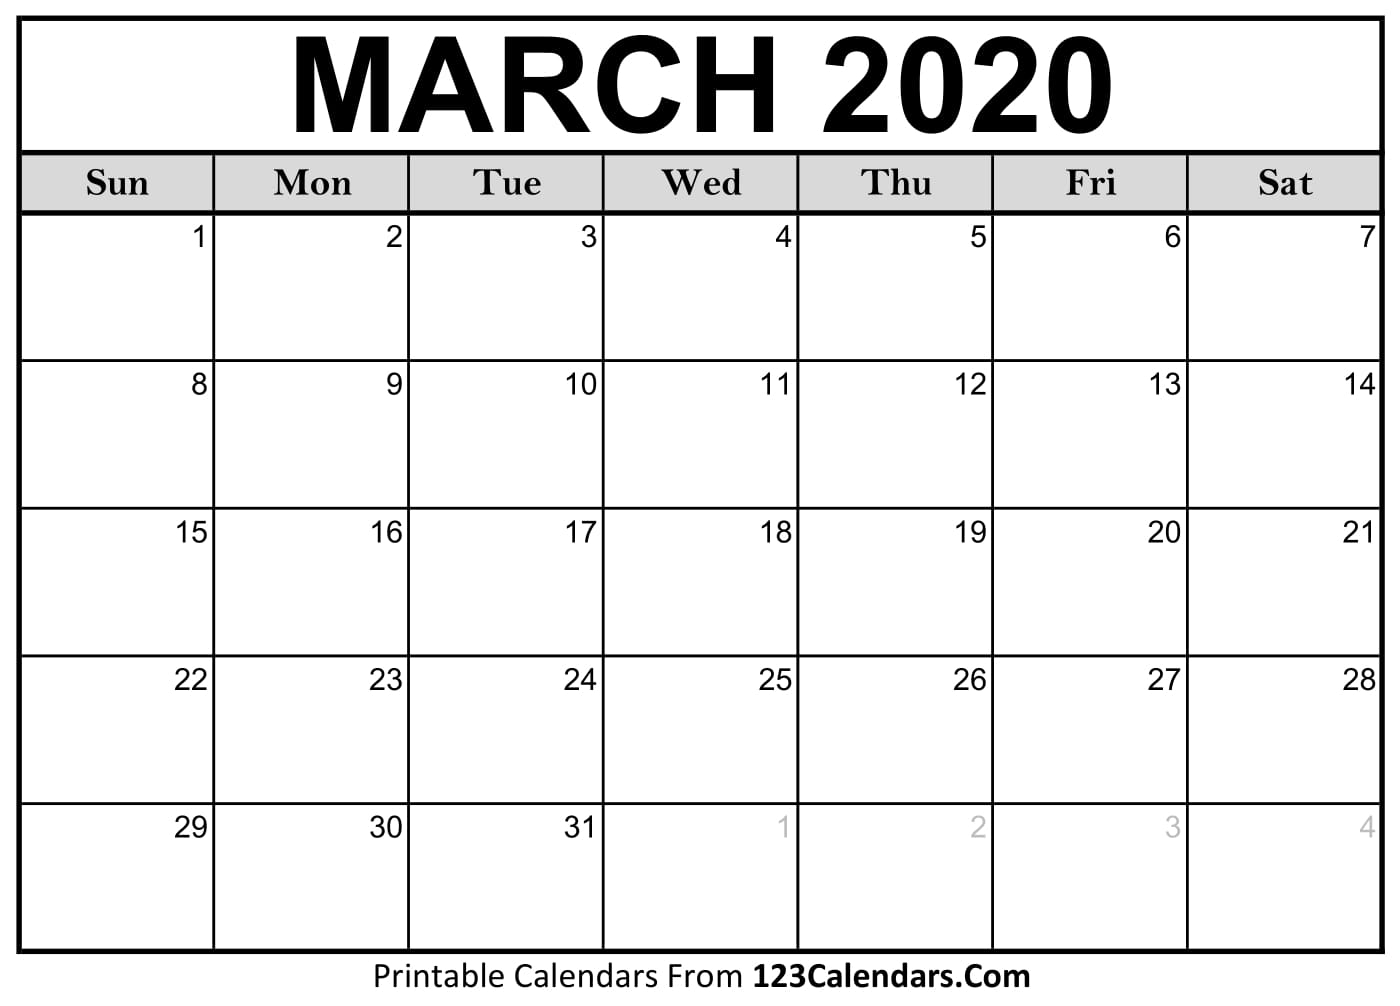 March 2020 Printable Calendar | 123Calendars in January 2020 Calendar 123Calendars